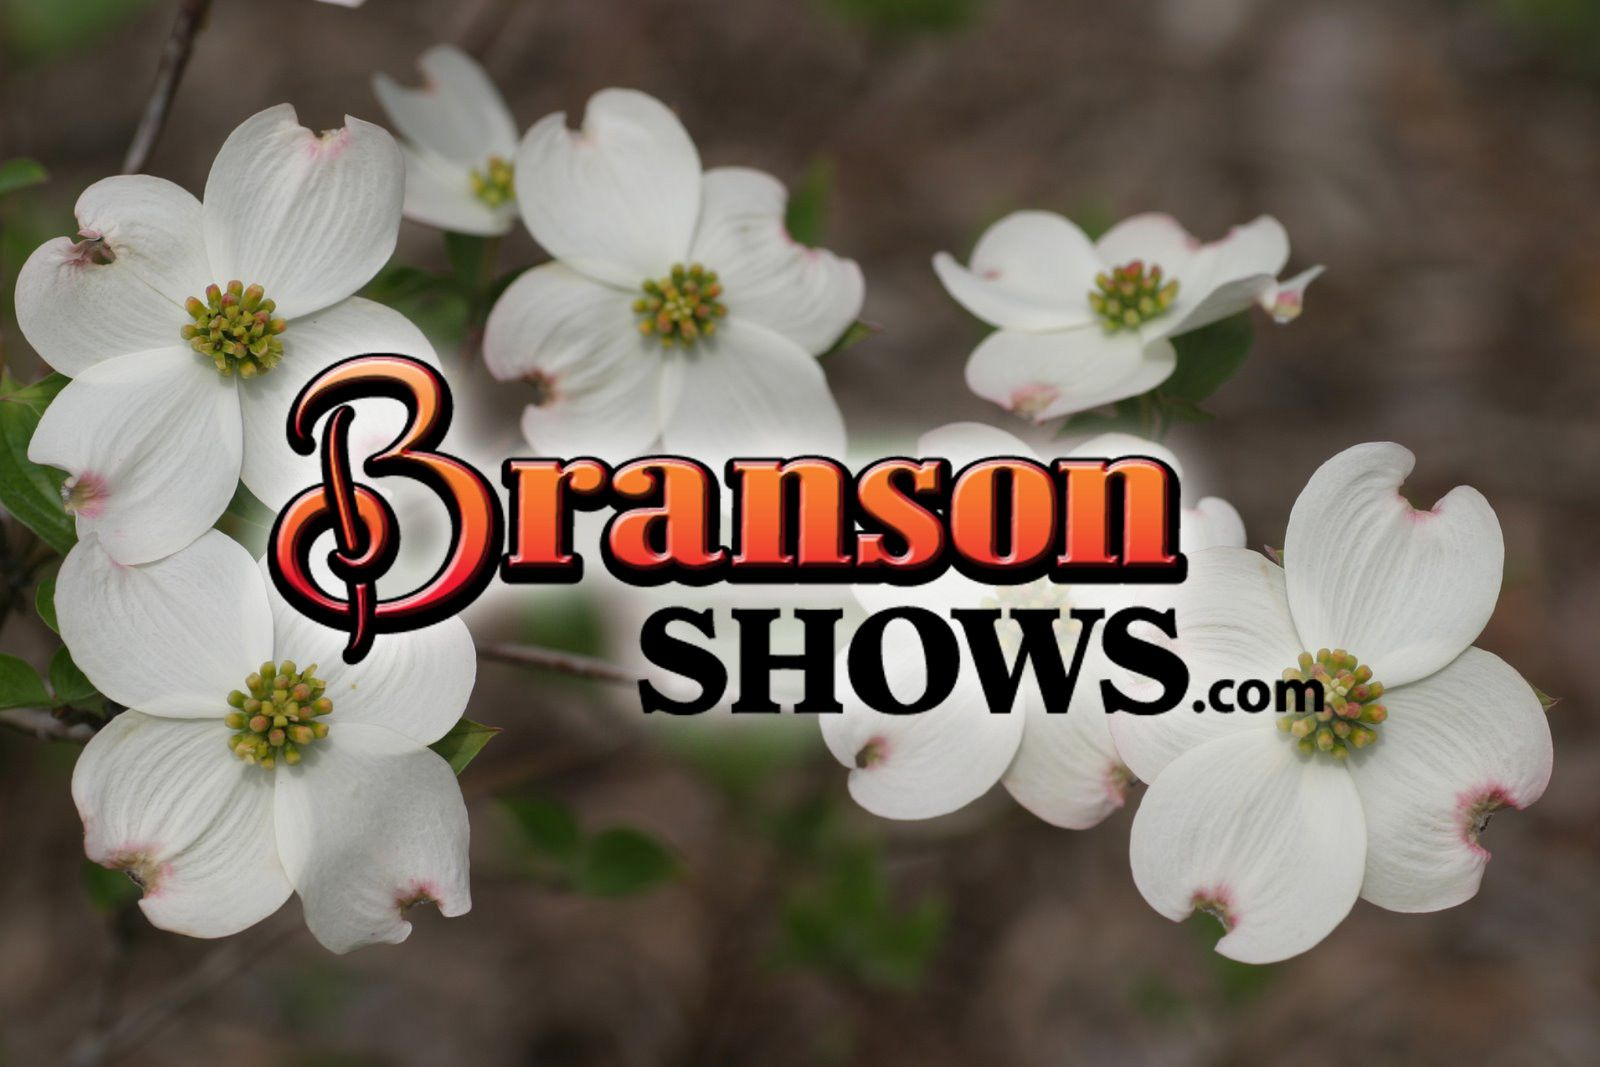 Start planning your trip to Branson, MO here: www.bransonshows.com